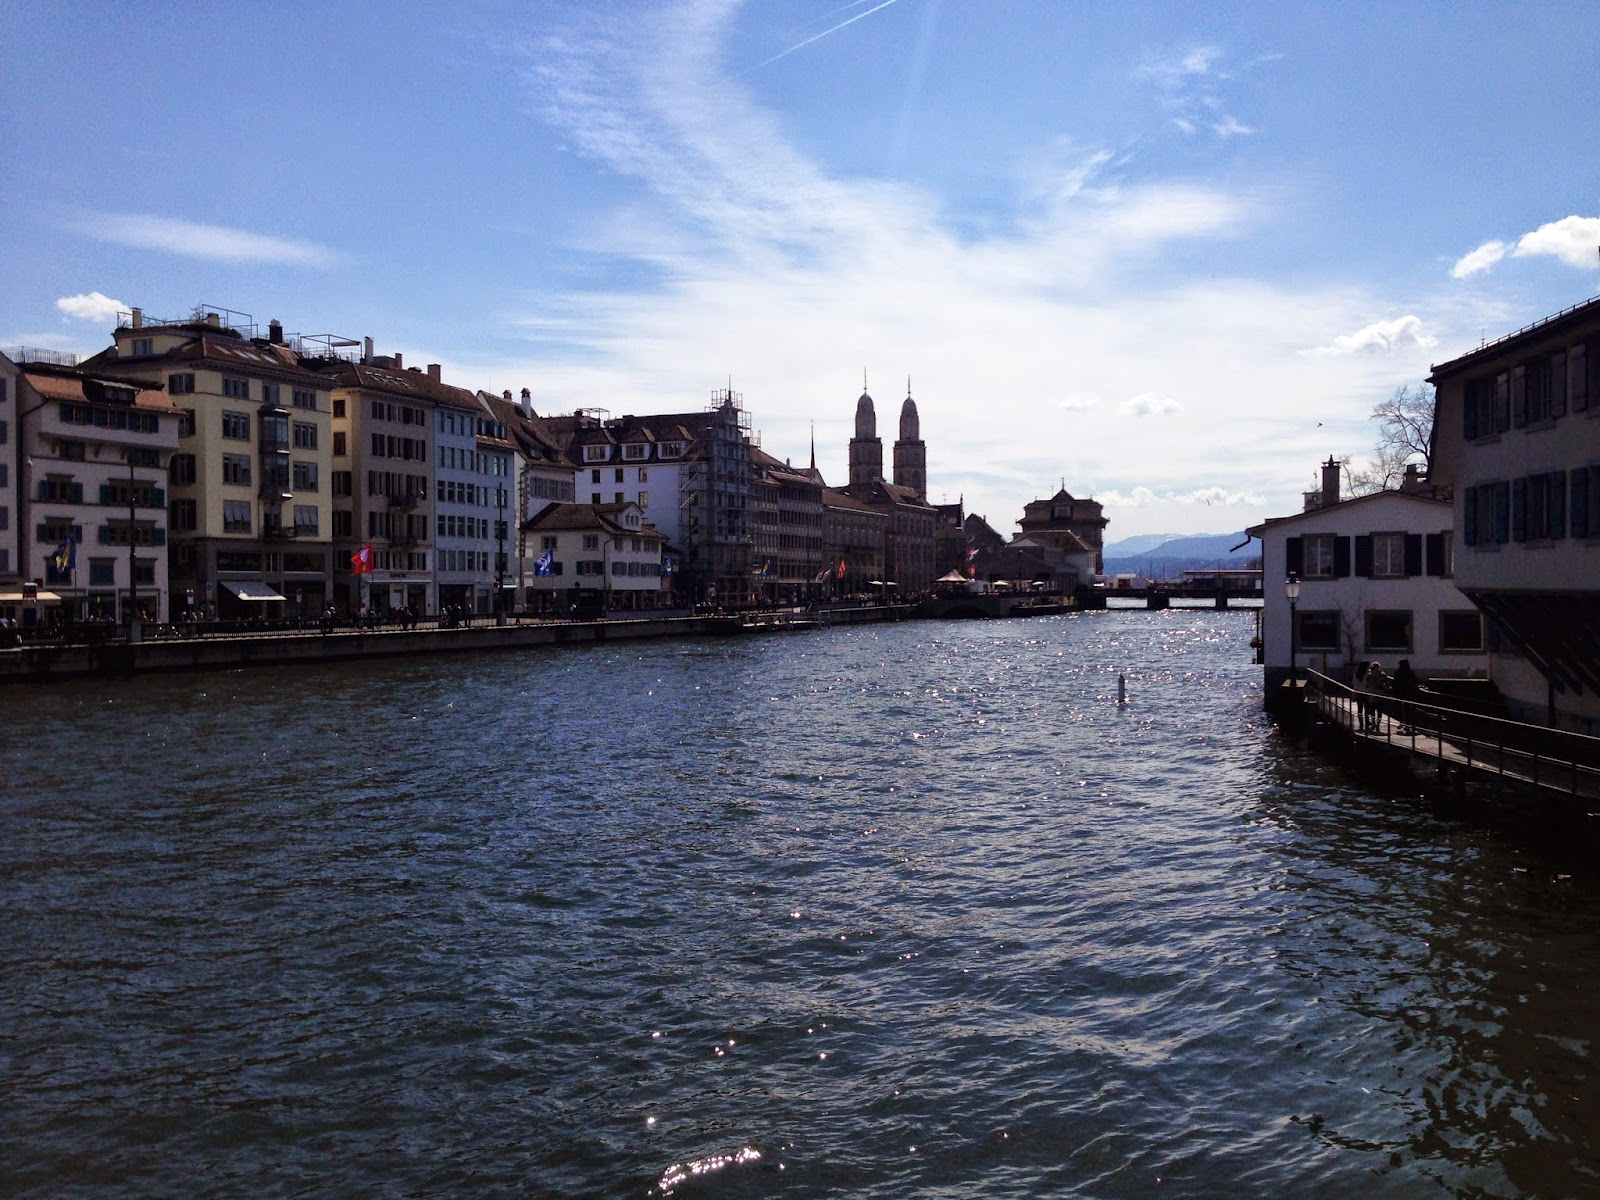 a weekend trip to beautiful zürich.